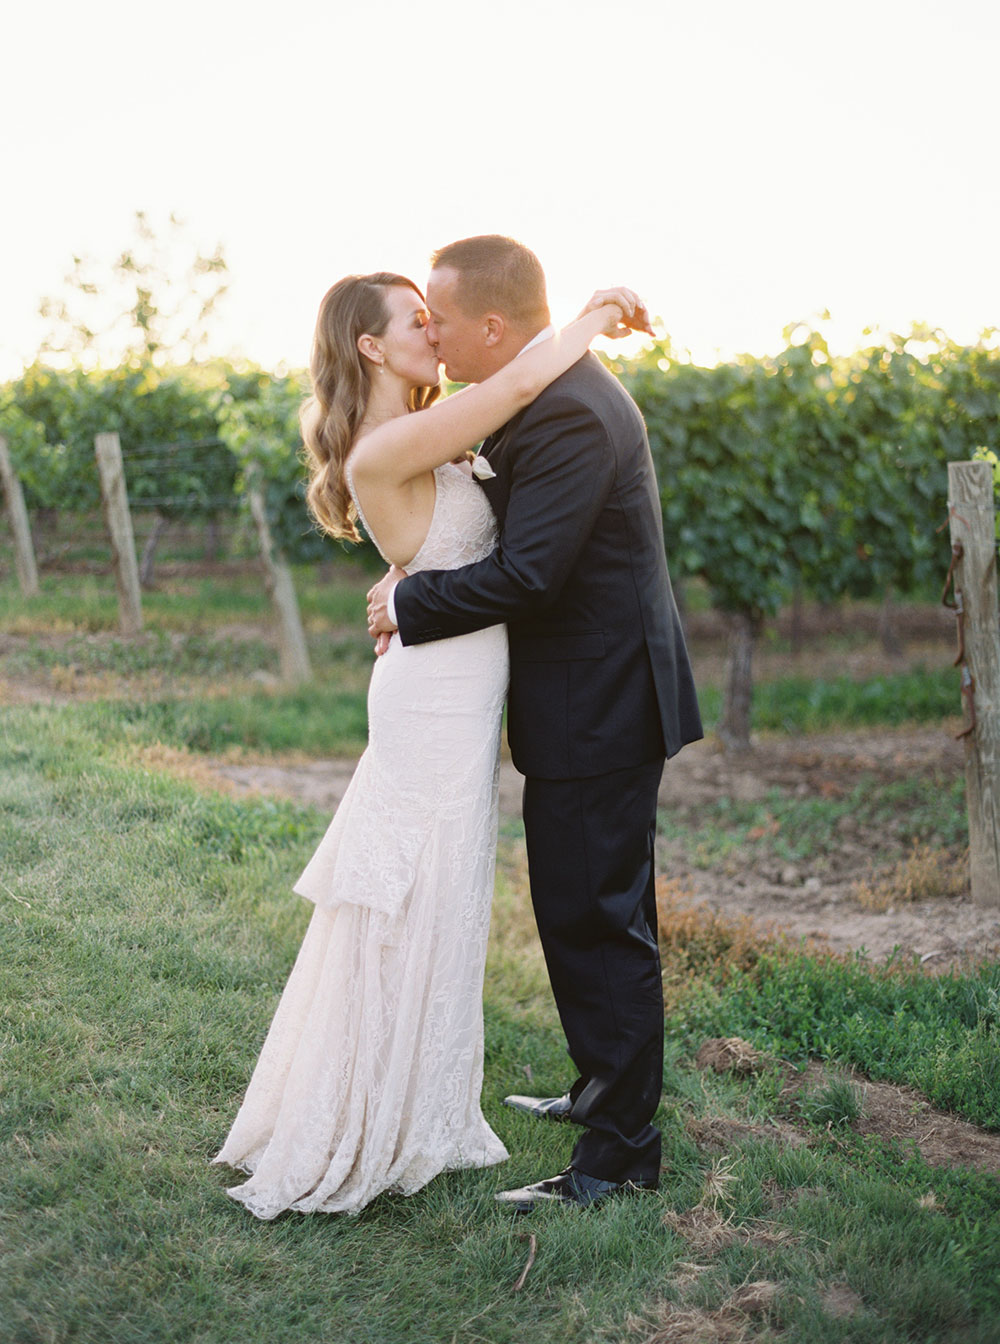 kurtz-orchards-wedding-gracewood-estate-niagara-on-the-lake-photo-by-katie-nicolle-photography-0094.JPG